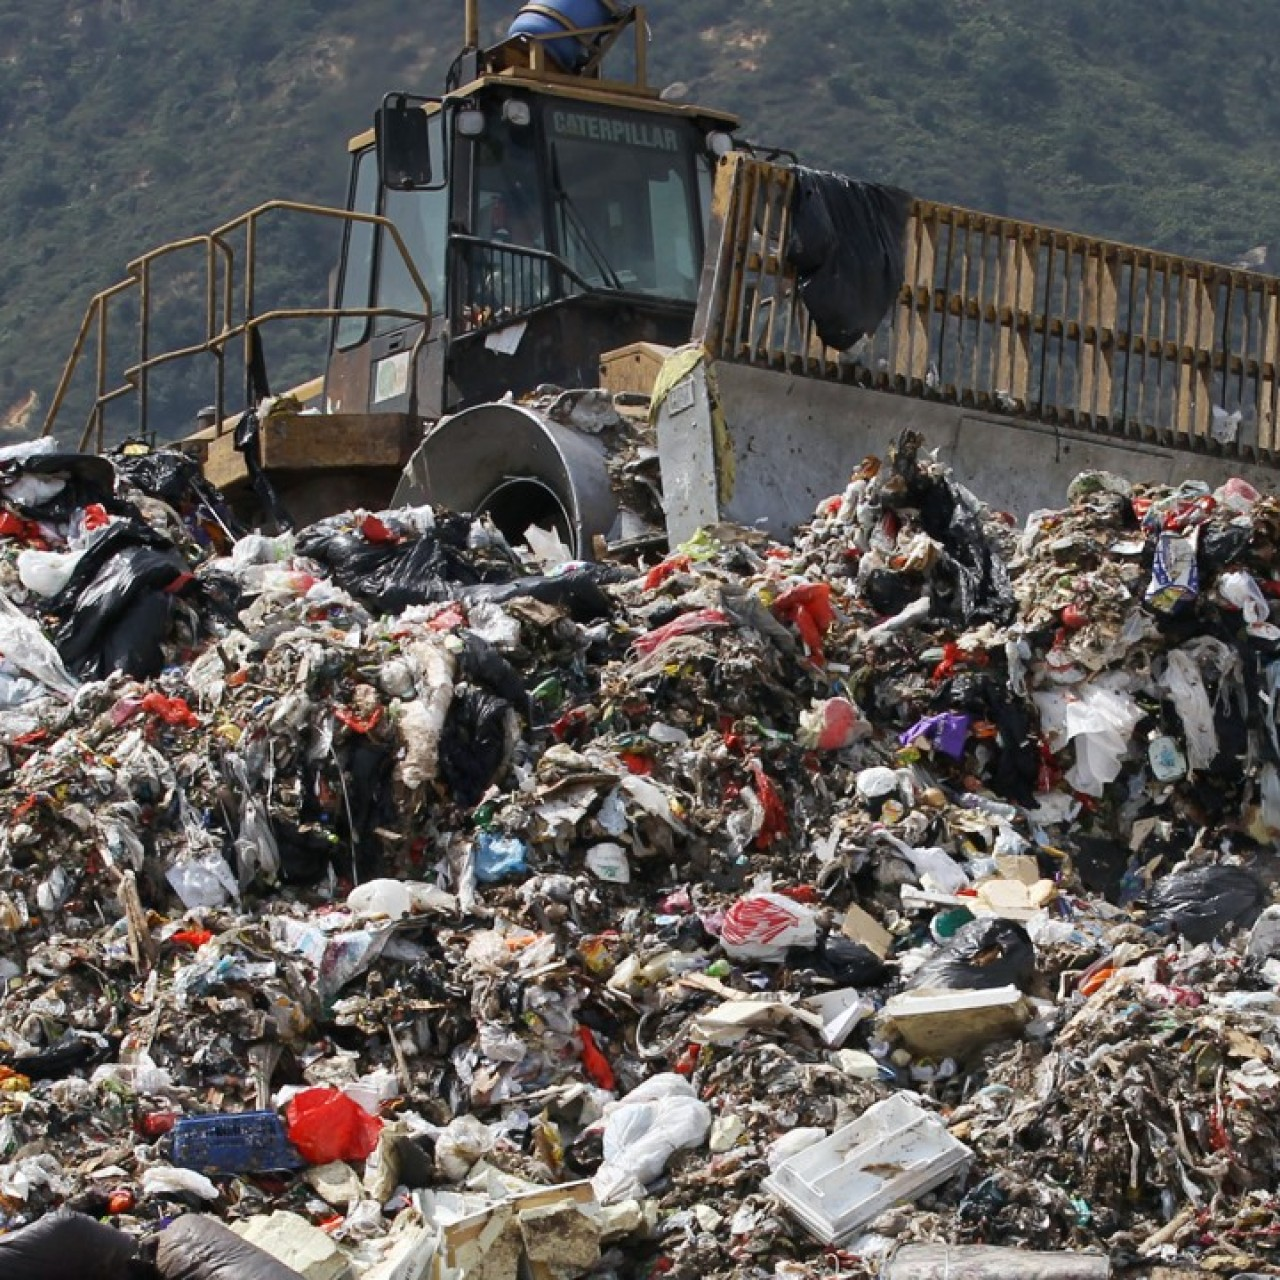 China's waste ban has rocked the recycling world and